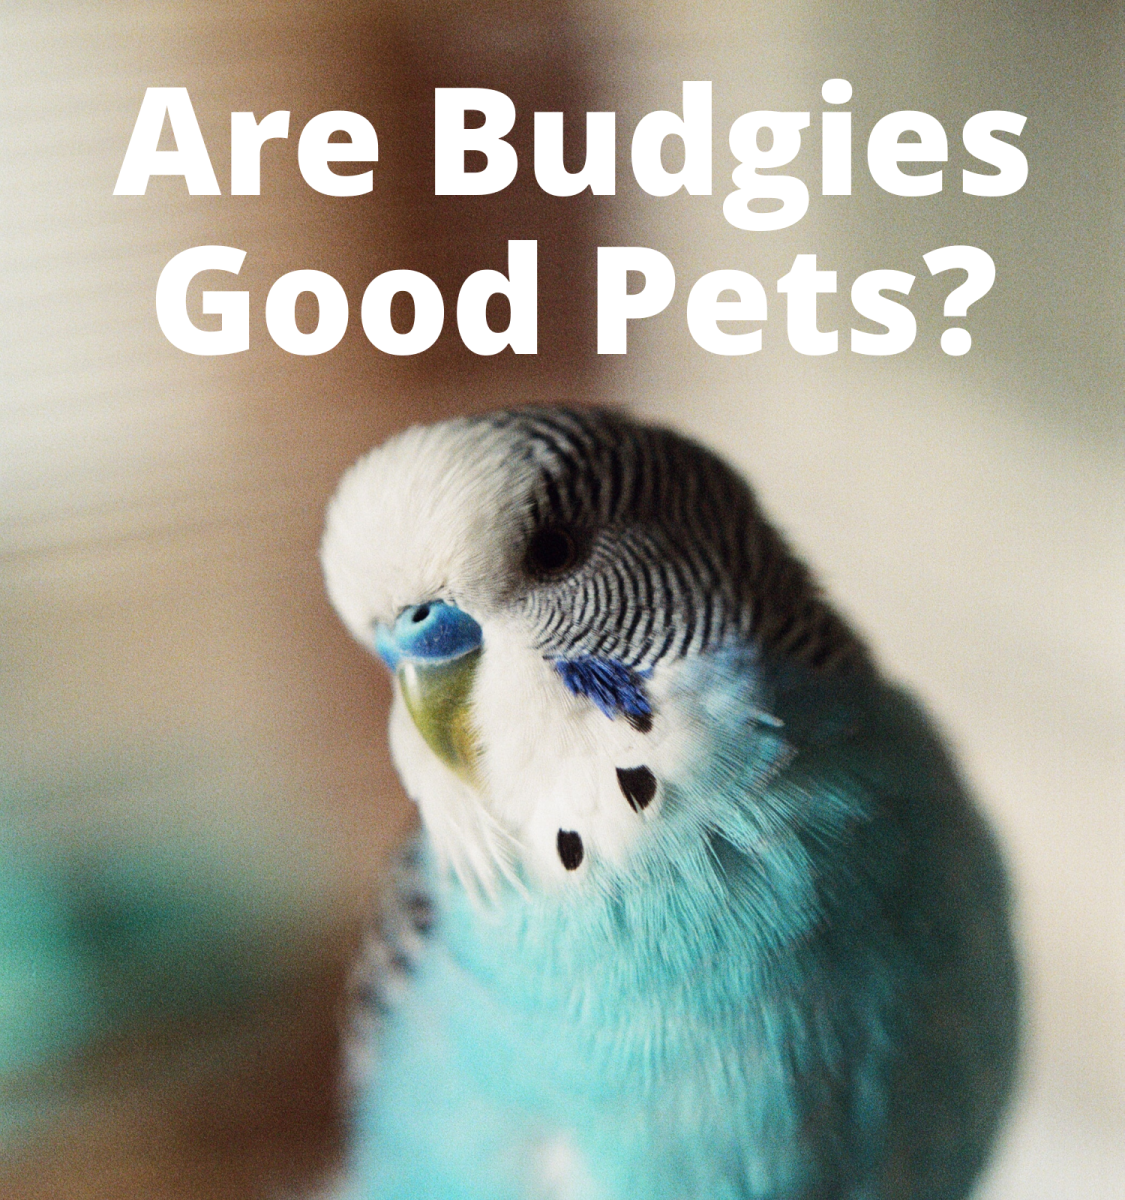 Is a Budgie the Right Pet for You?